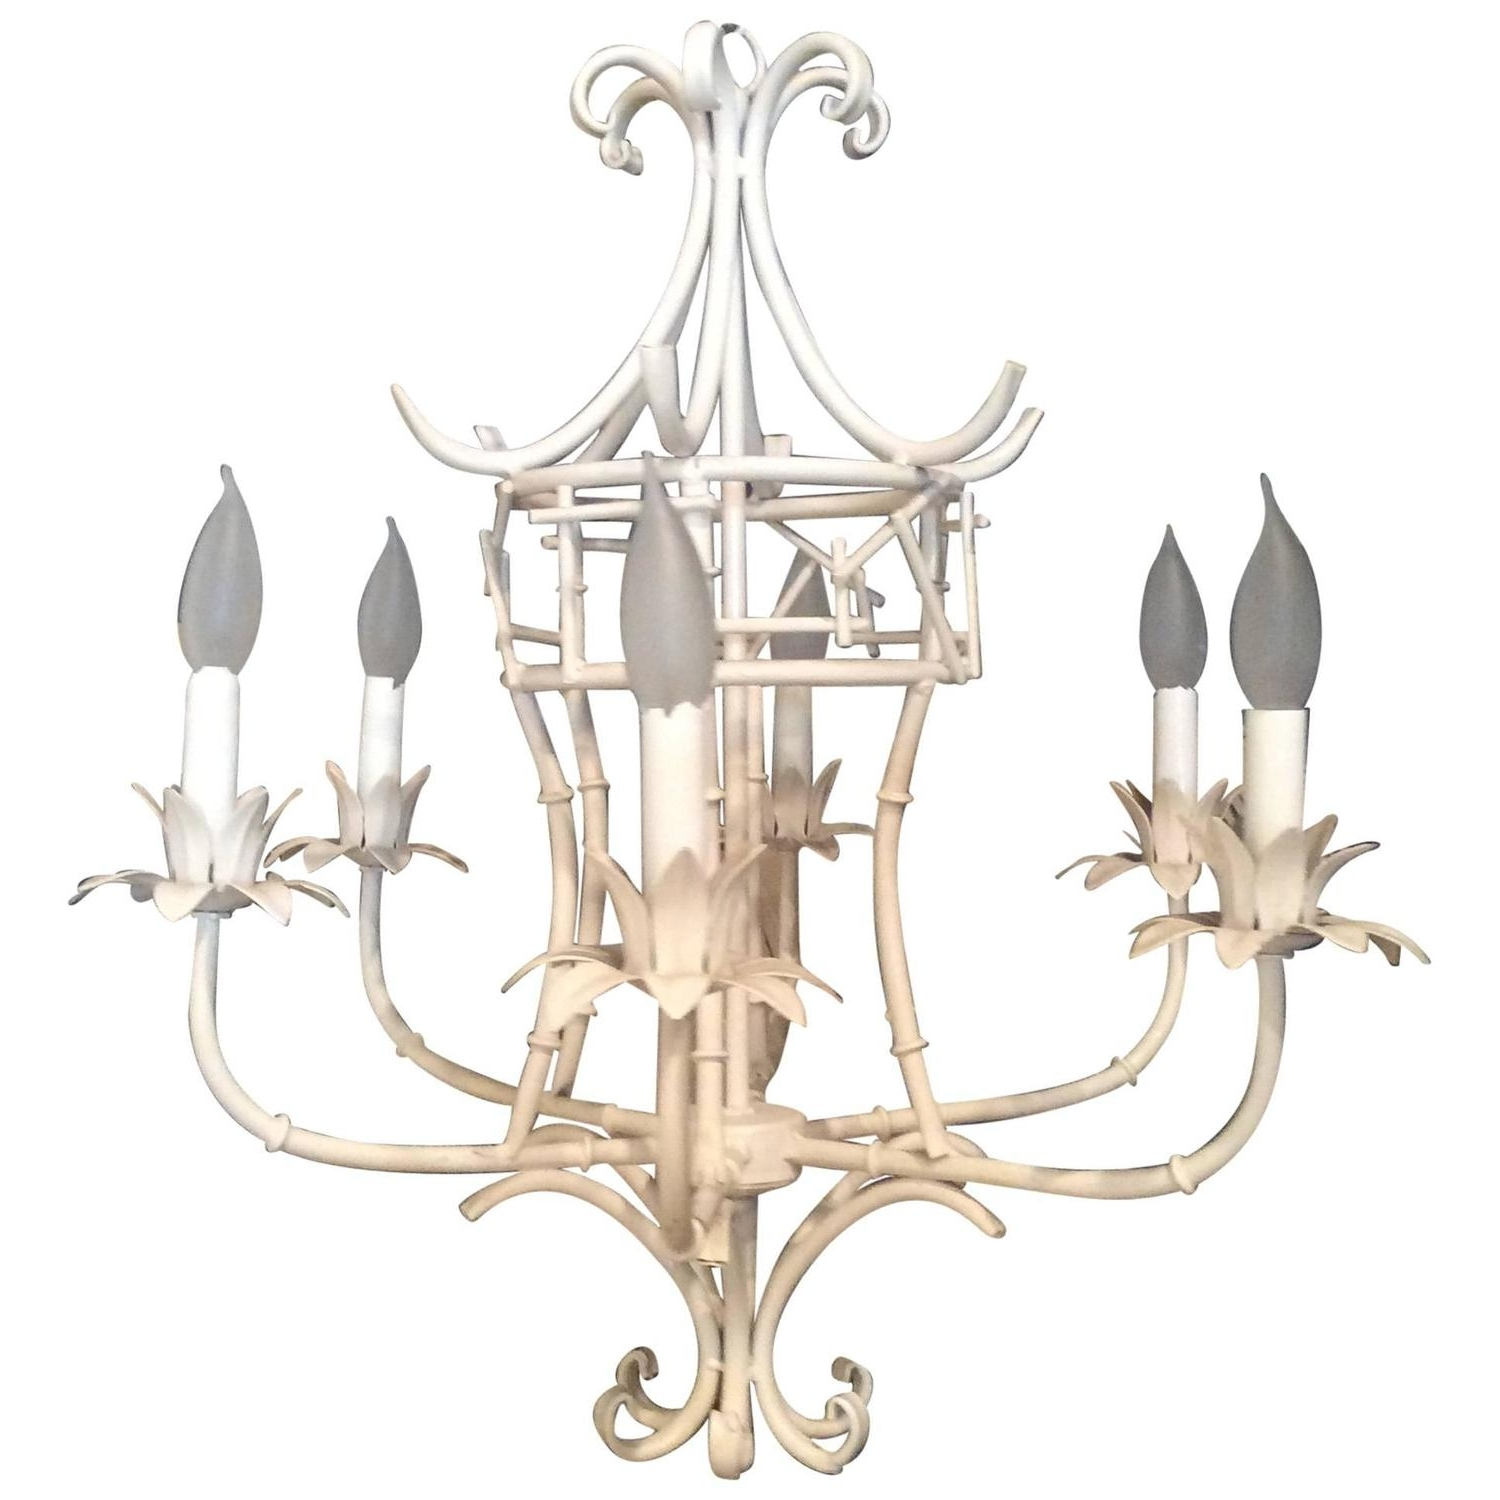 Newest Pagoda Chandeliers – 69 For Sale On 1stdibs Throughout Chinese Chandeliers (View 14 of 20)